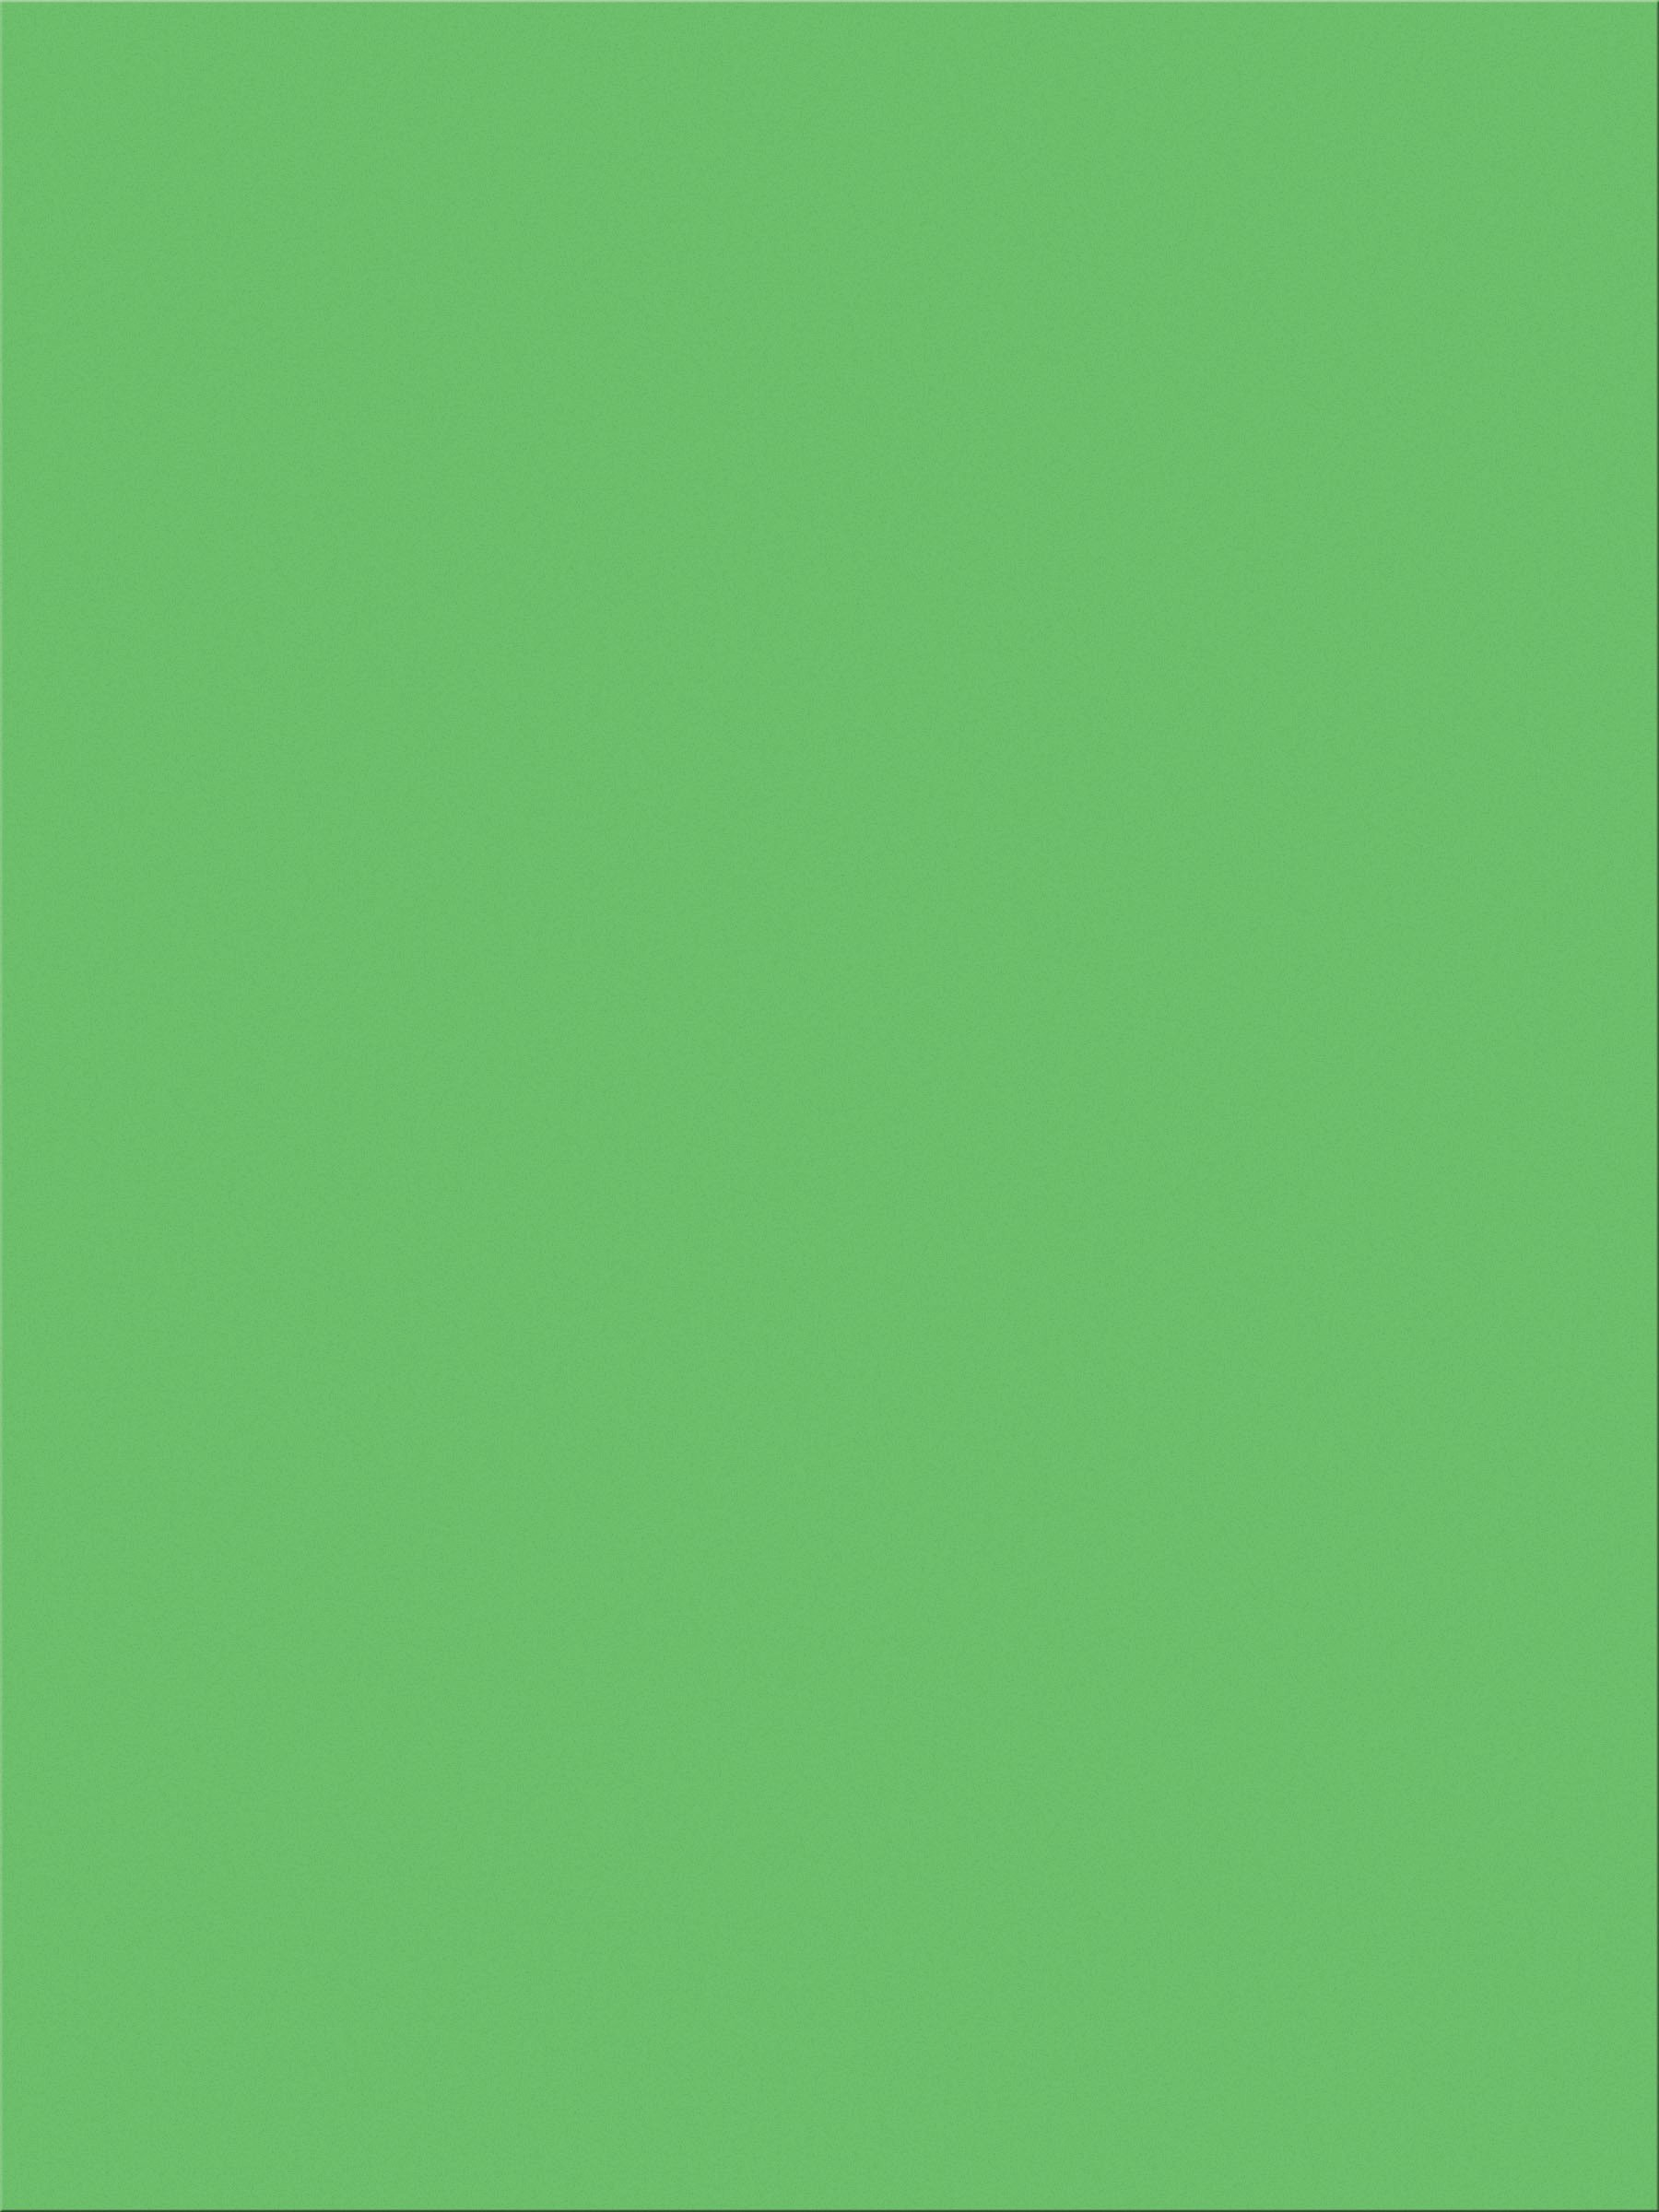 Pacon SunWorks Construction Paper, 9'' x 12'', 100-Count, Bright Green (9604)